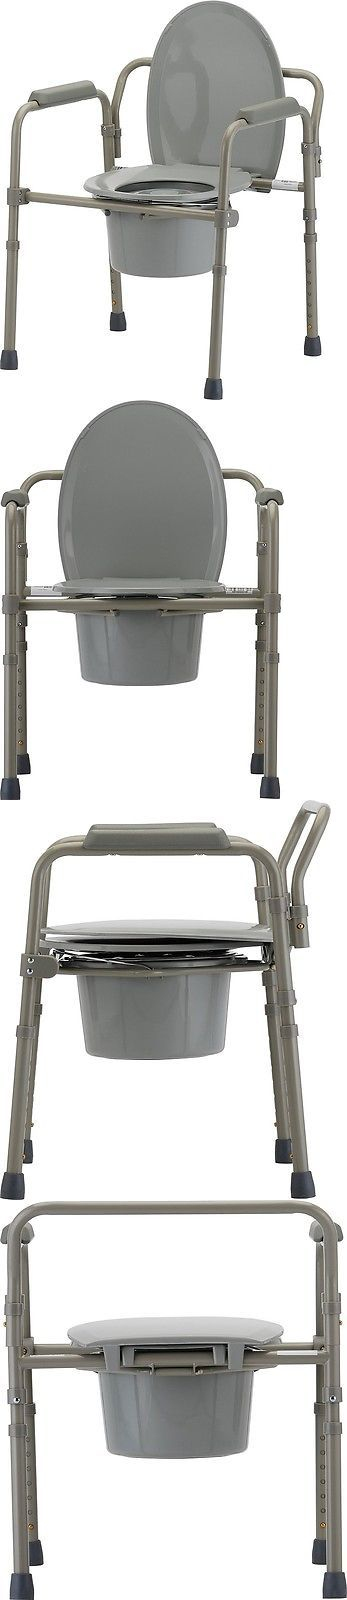 Toilet Frames and Commodes: Toilet Chair Seat Folding Bedside Commode Bucket Safety Frame Sturdy Portable -> BUY IT NOW ONLY: $76.76 on eBay!